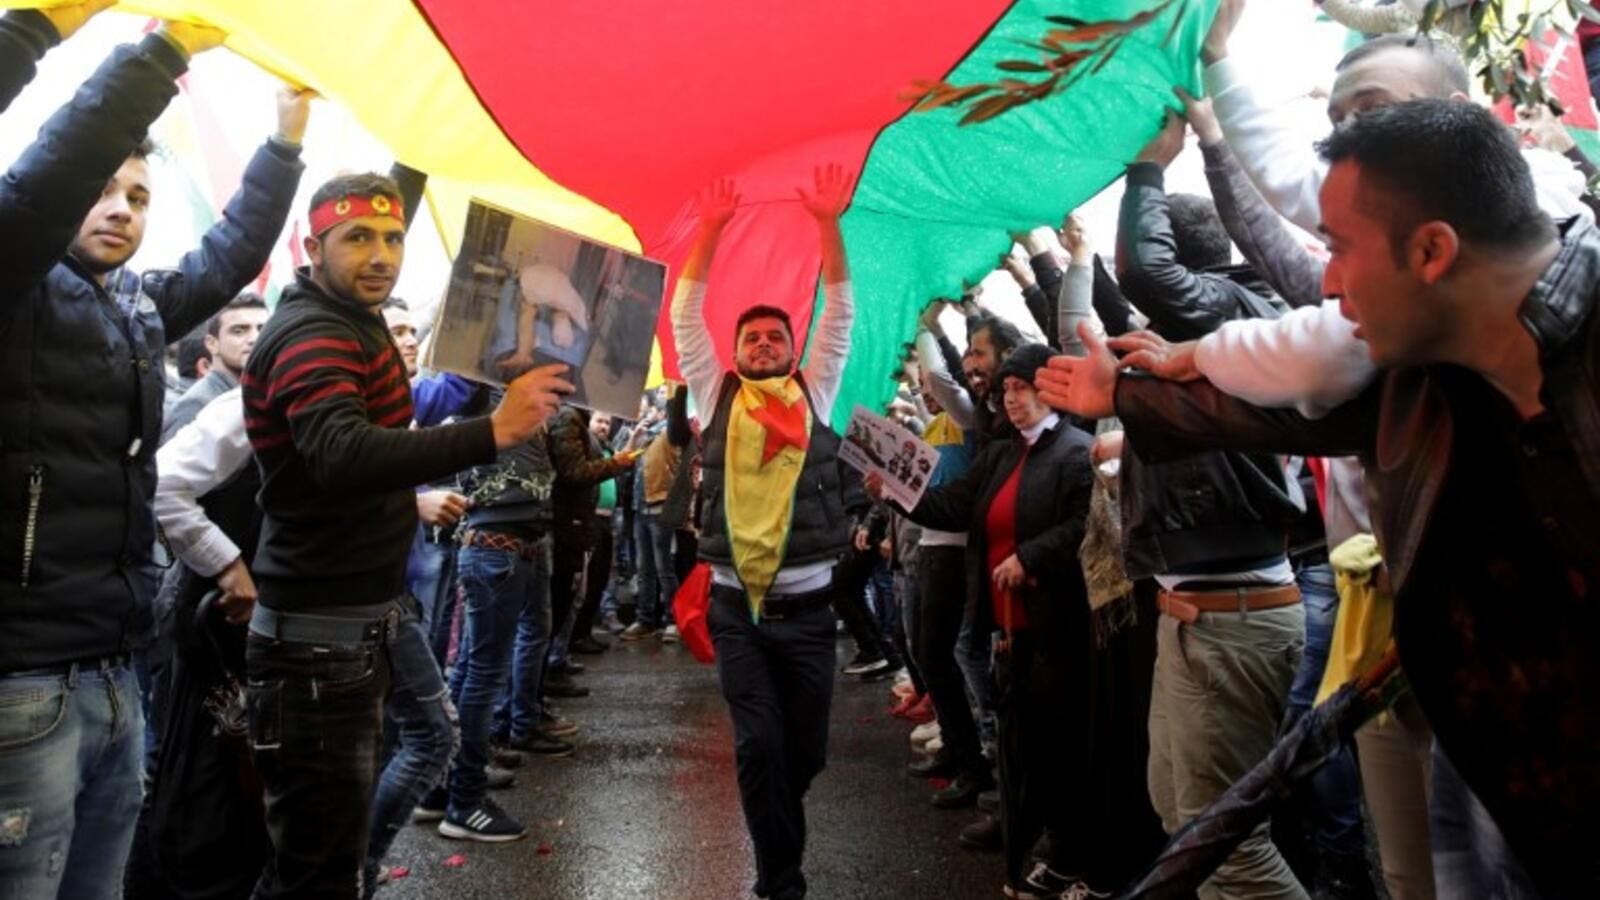 Lebanese Kurds wave flags and chant slogans on Jan. 28, 2018, during a protest near the European Commission offices in Beirut against the ongoing Turkish military campaign in the Kurdish-held Syrian enclave of Afrin (ANWAR AMRO / AFP)